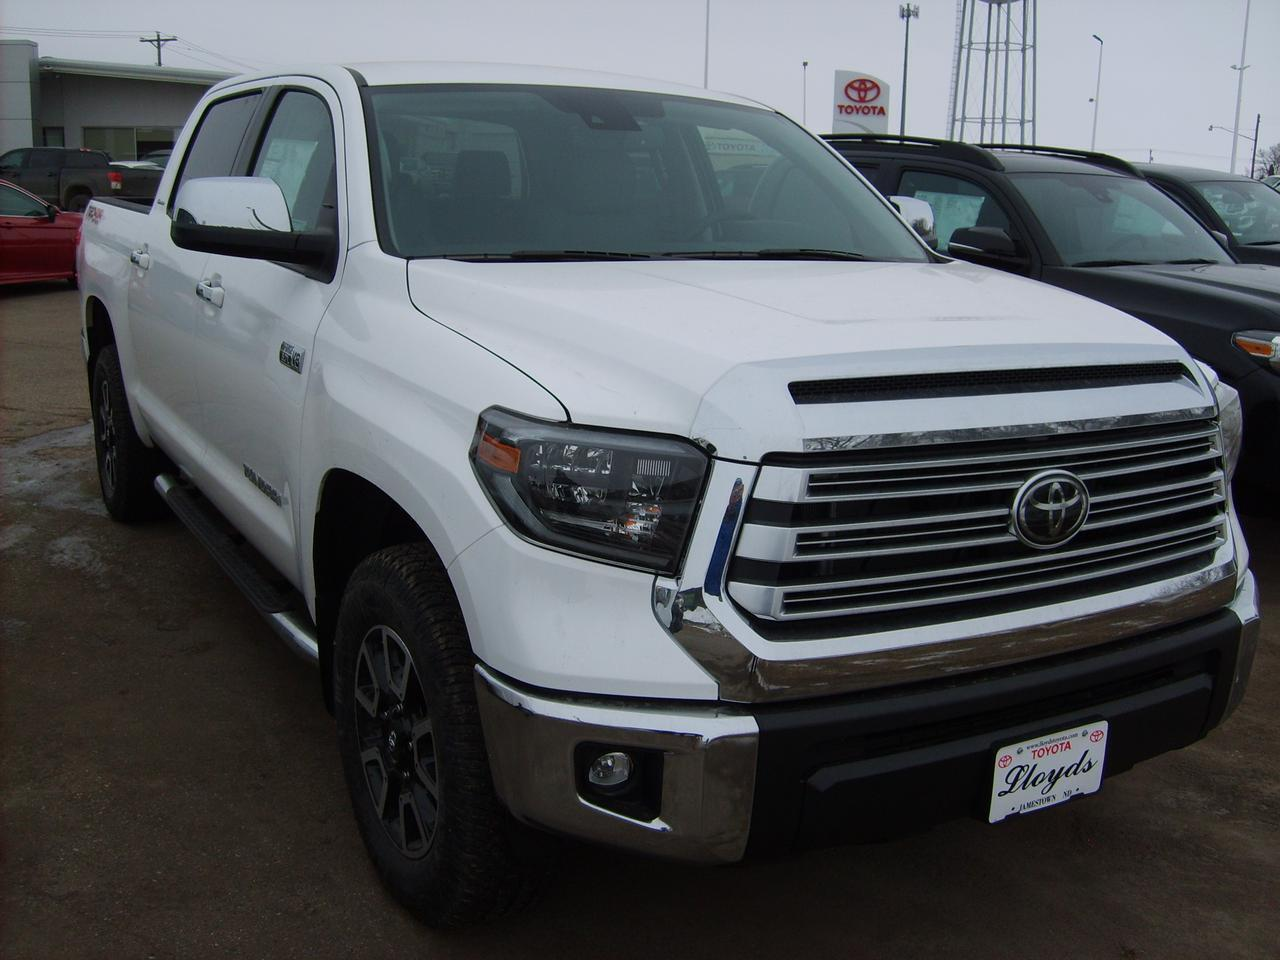 2020 Toyota Tundra 4x4 Limited Crewmax TRD Off-Road Package